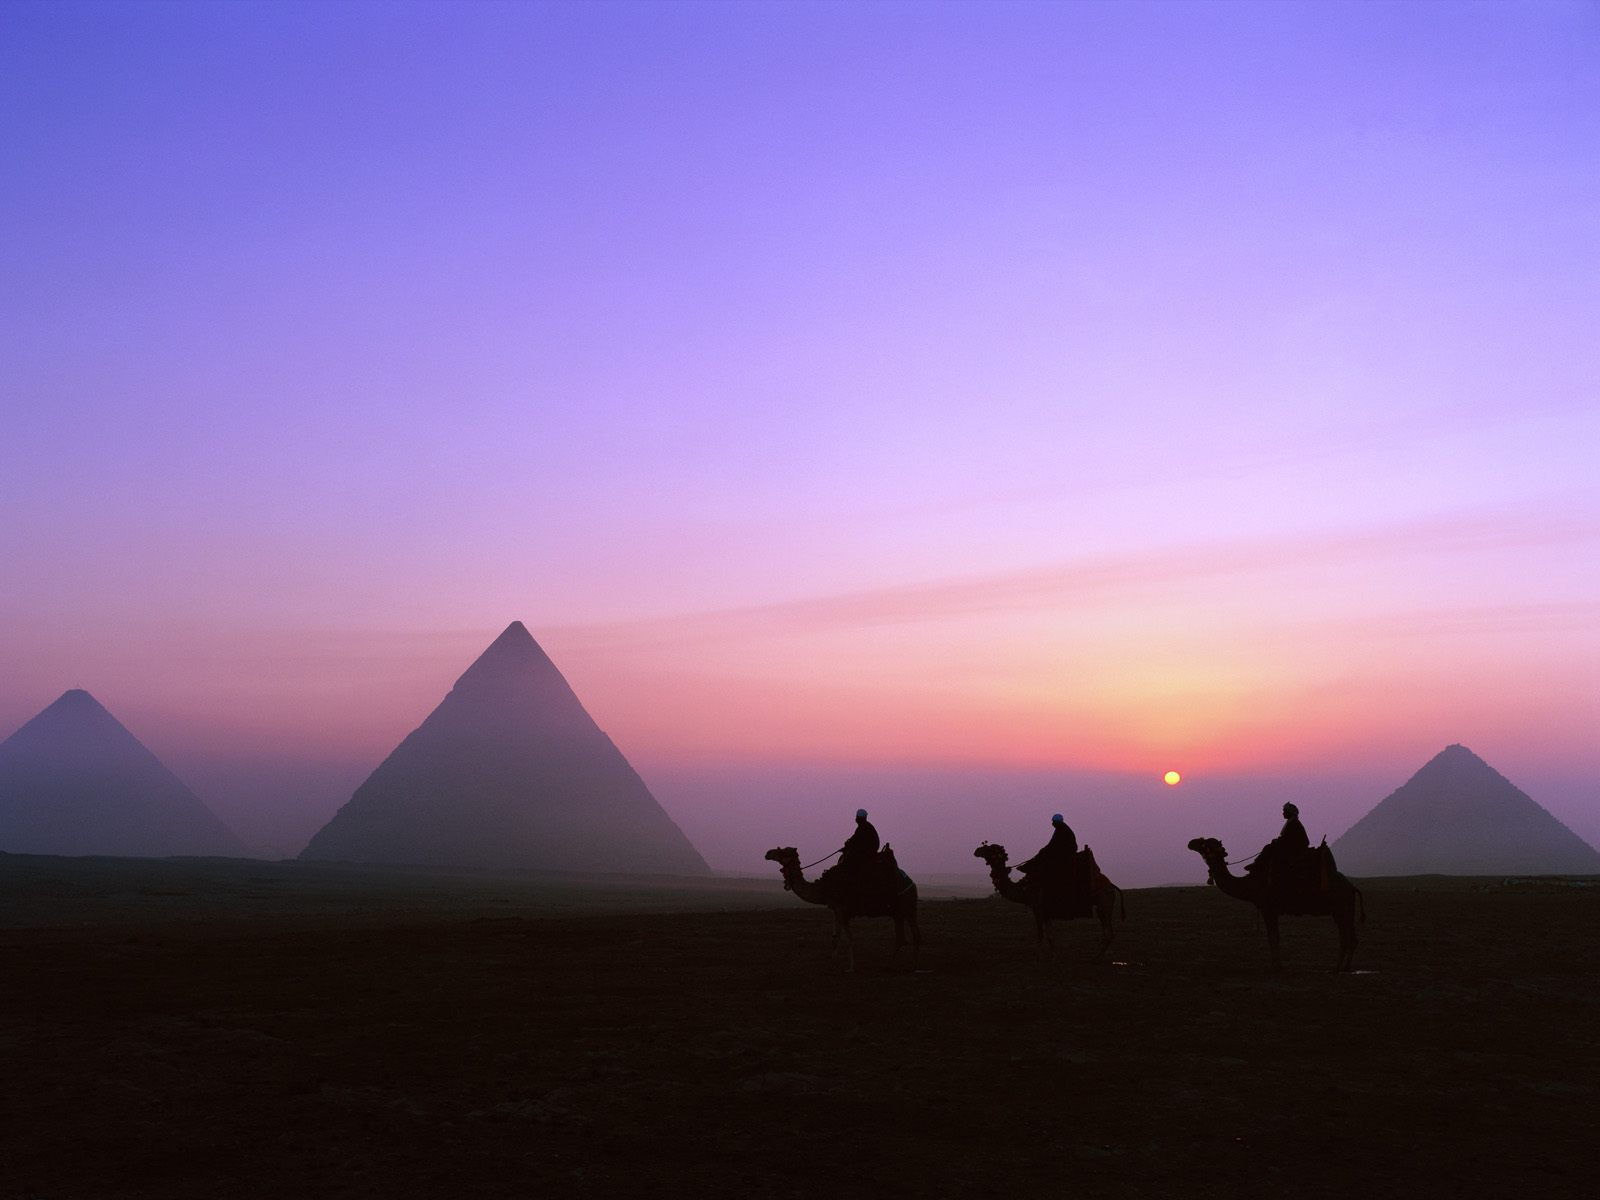 Download Pyramids Giza Egypt Mystic Journey hd Wallpaper in high 1600x1200